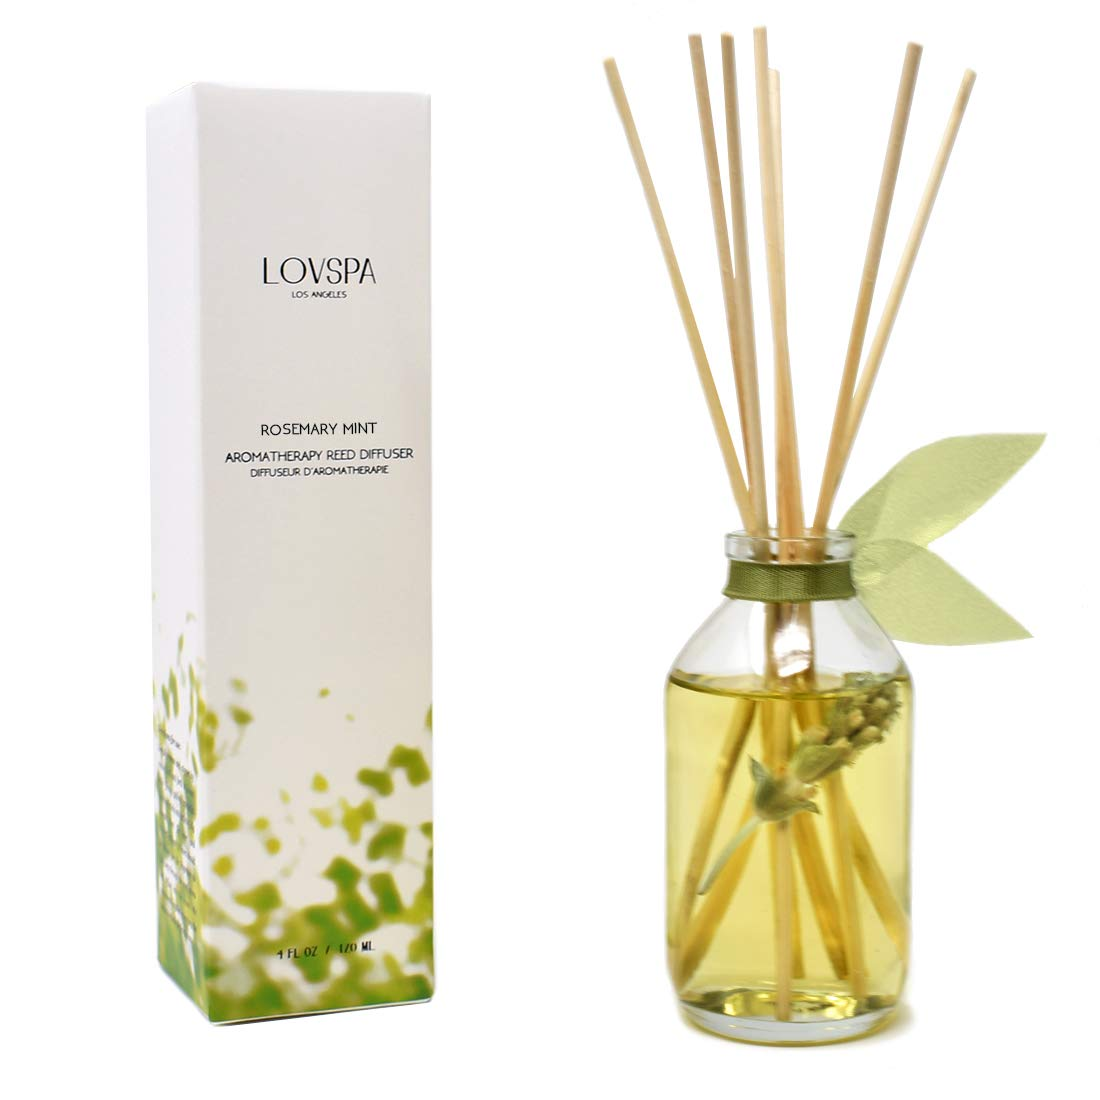 LOVSPA Rosemary Mint Herbal Deluxe Reed Diffuser Oil Set Room Freshener - Relaxing Scent – Rosemary, Spearmint, Sandalwood, Amber and Earthy Patchouli - Made with Real Botanicals and Essential Oils